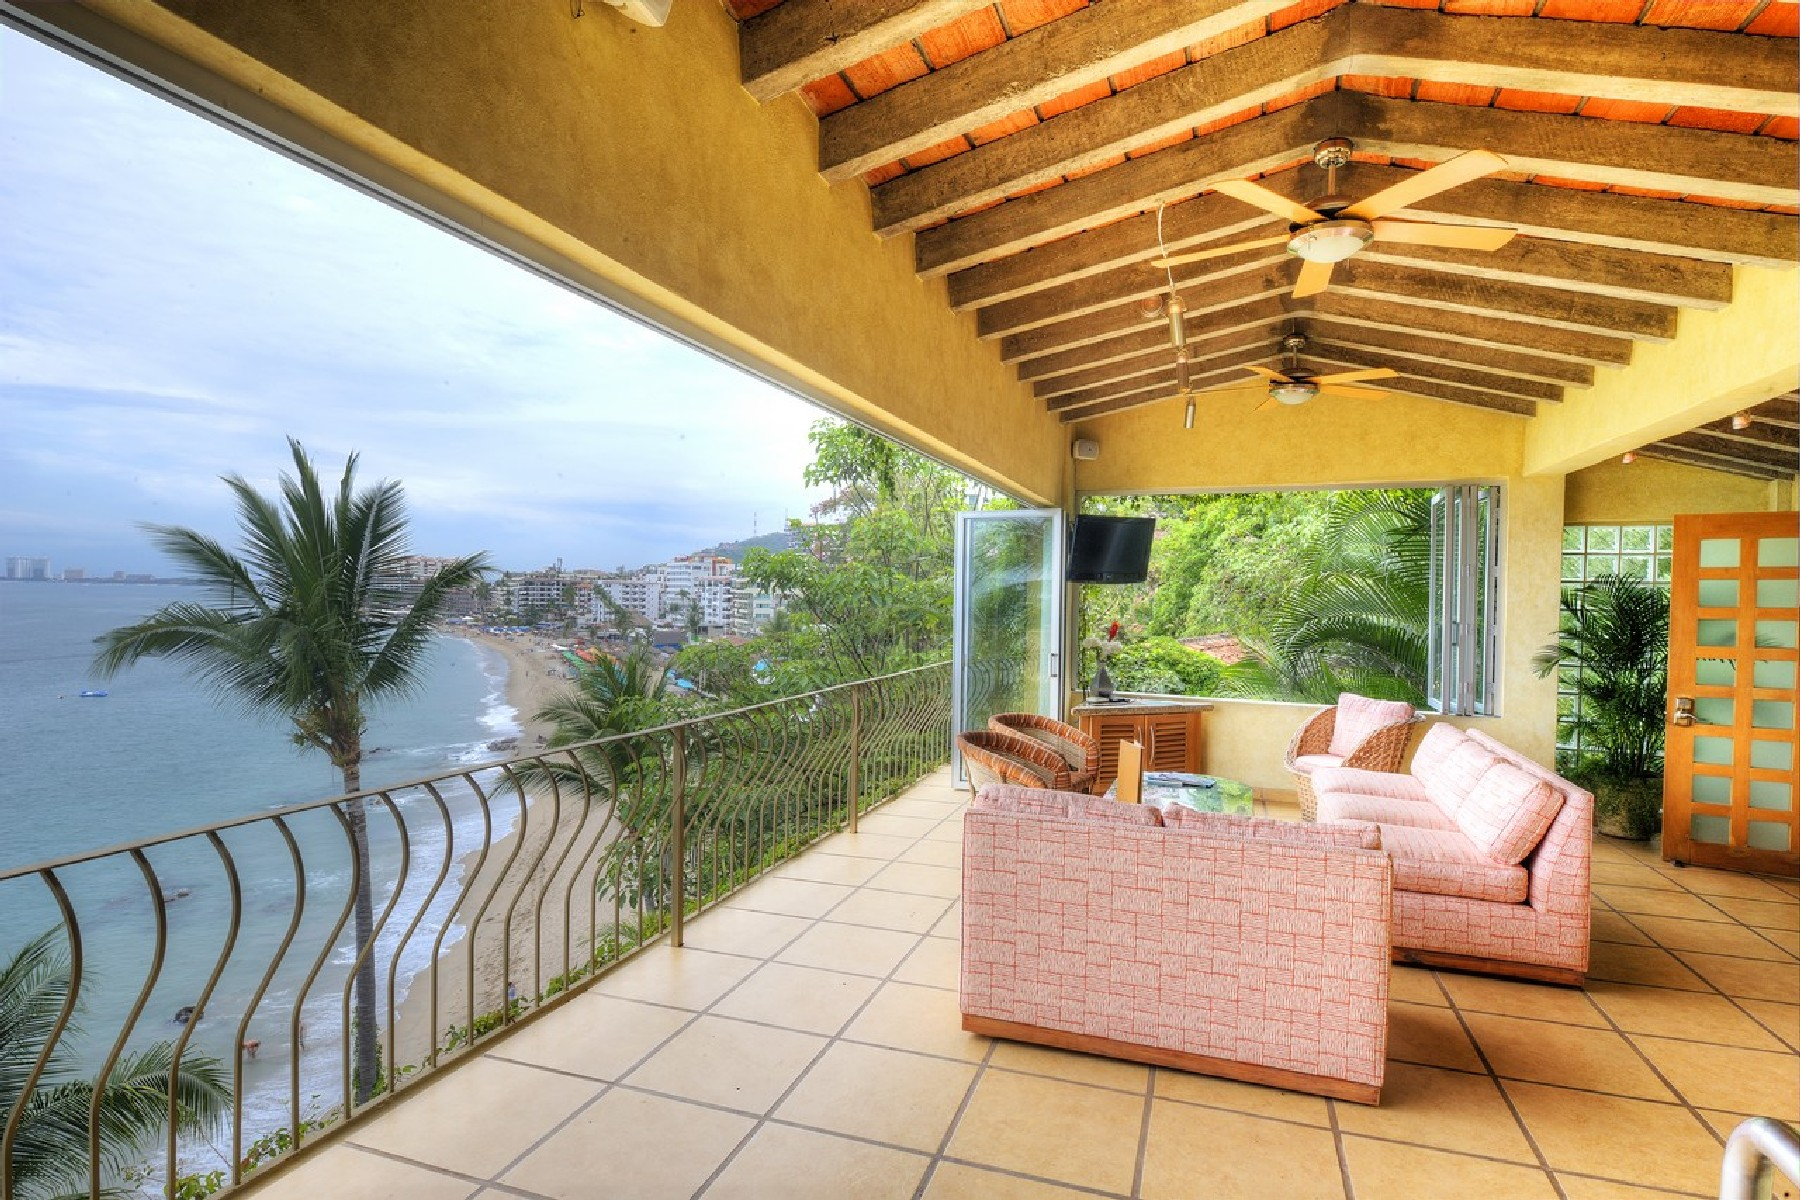 Additional photo for property listing at Villa Verano en Conchas Chinas Villa Verano en Conchas Chinas Santa Barbara 430 Puerto Vallarta, Jalisco 48399 Mexico